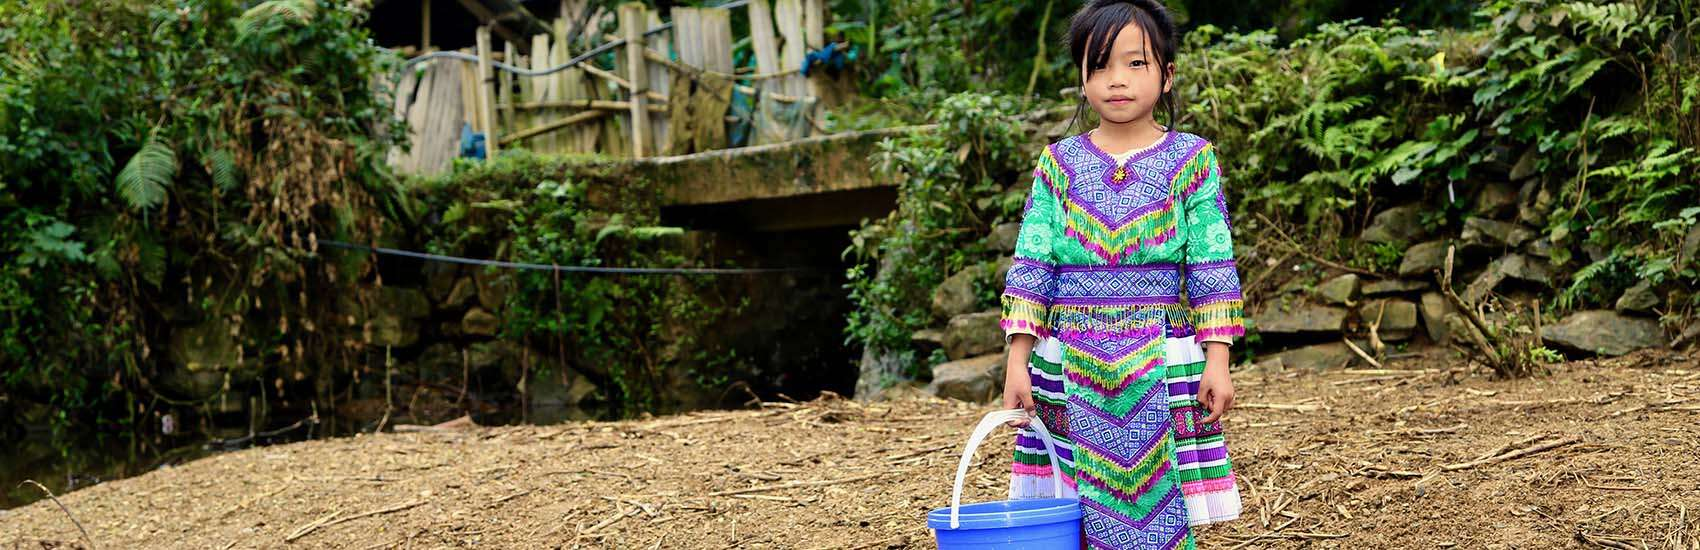 A young girl holds a blue bucket while standing next to a small river in Vietnam.